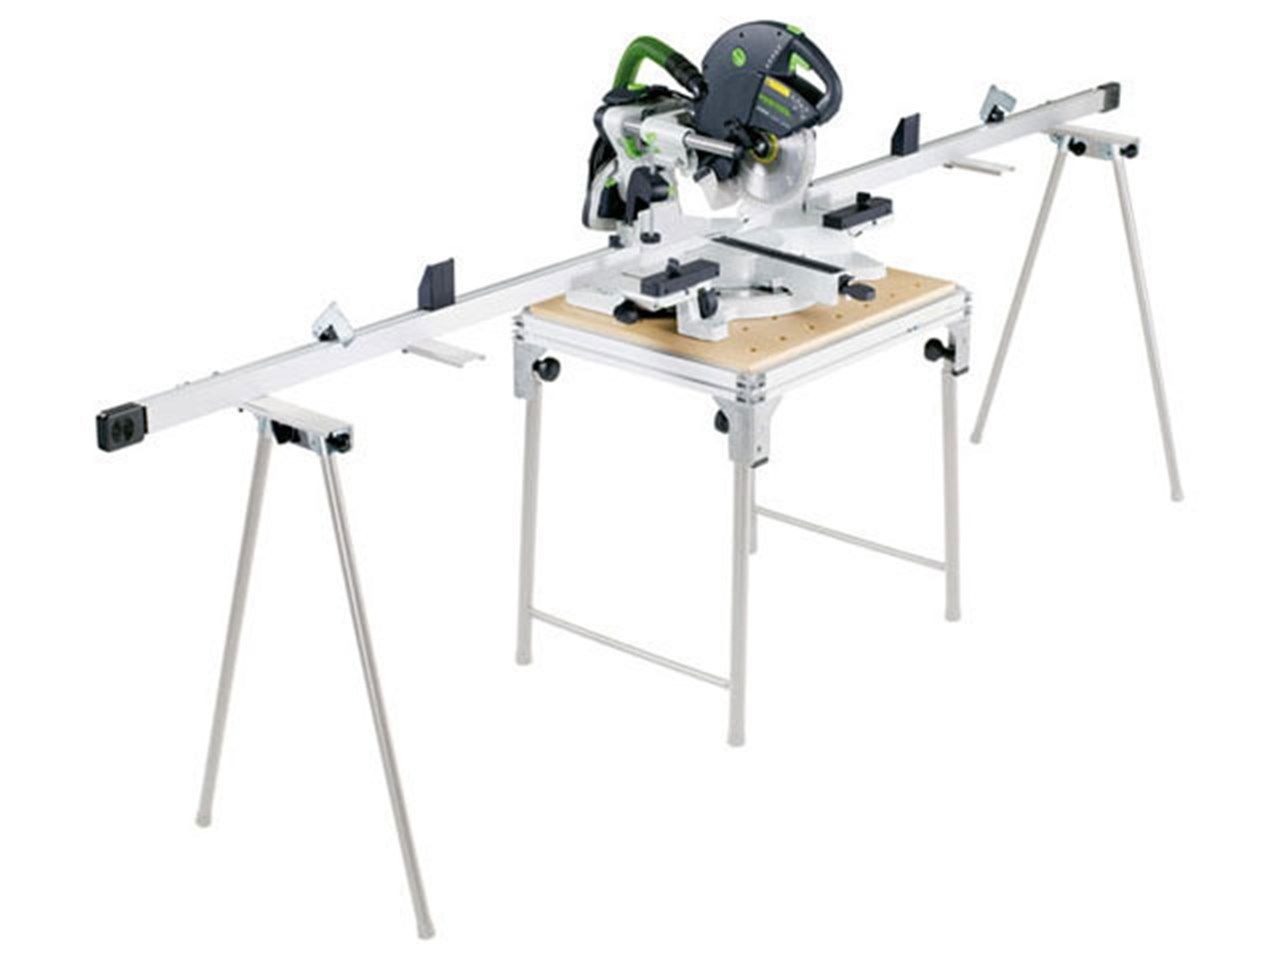 festool ks 120 eb set 240v kapex sliding compound mitre saw. Black Bedroom Furniture Sets. Home Design Ideas